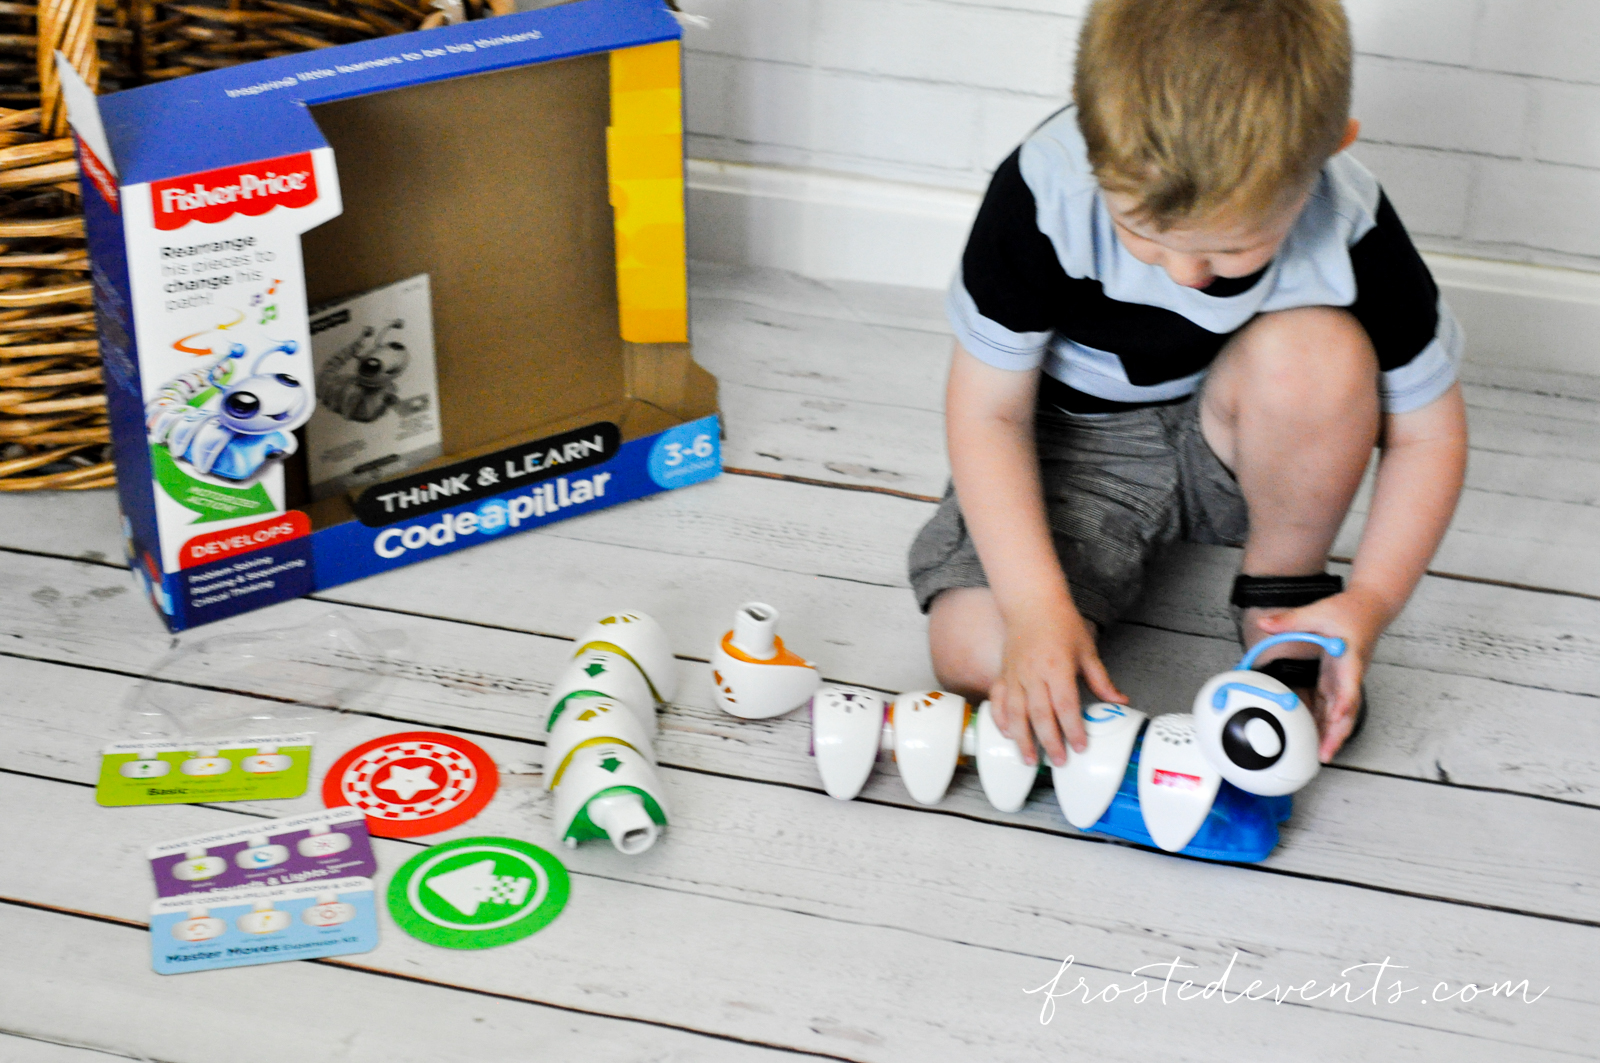 Best Toys for 2 Year Old Boys - Toddler toys Gift Guide via Misty Nelson, mom blogger and parenting influencer @frostedevents